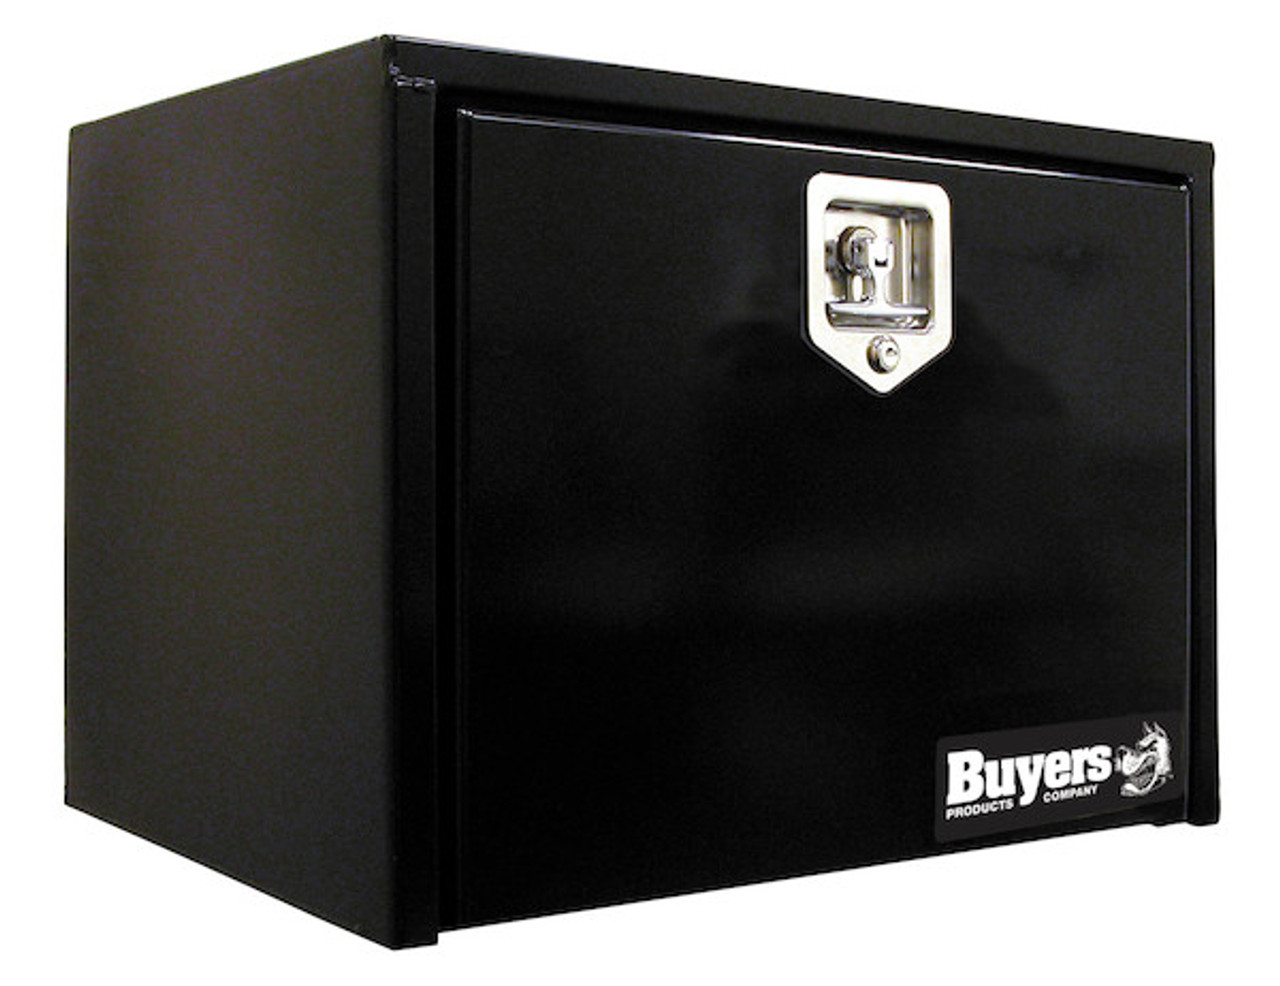 1703350 BUYERS PRODUCTS BLACK STEEL UNDERBODY TRUCK BOX WITH T-LATCH TOOLBOX